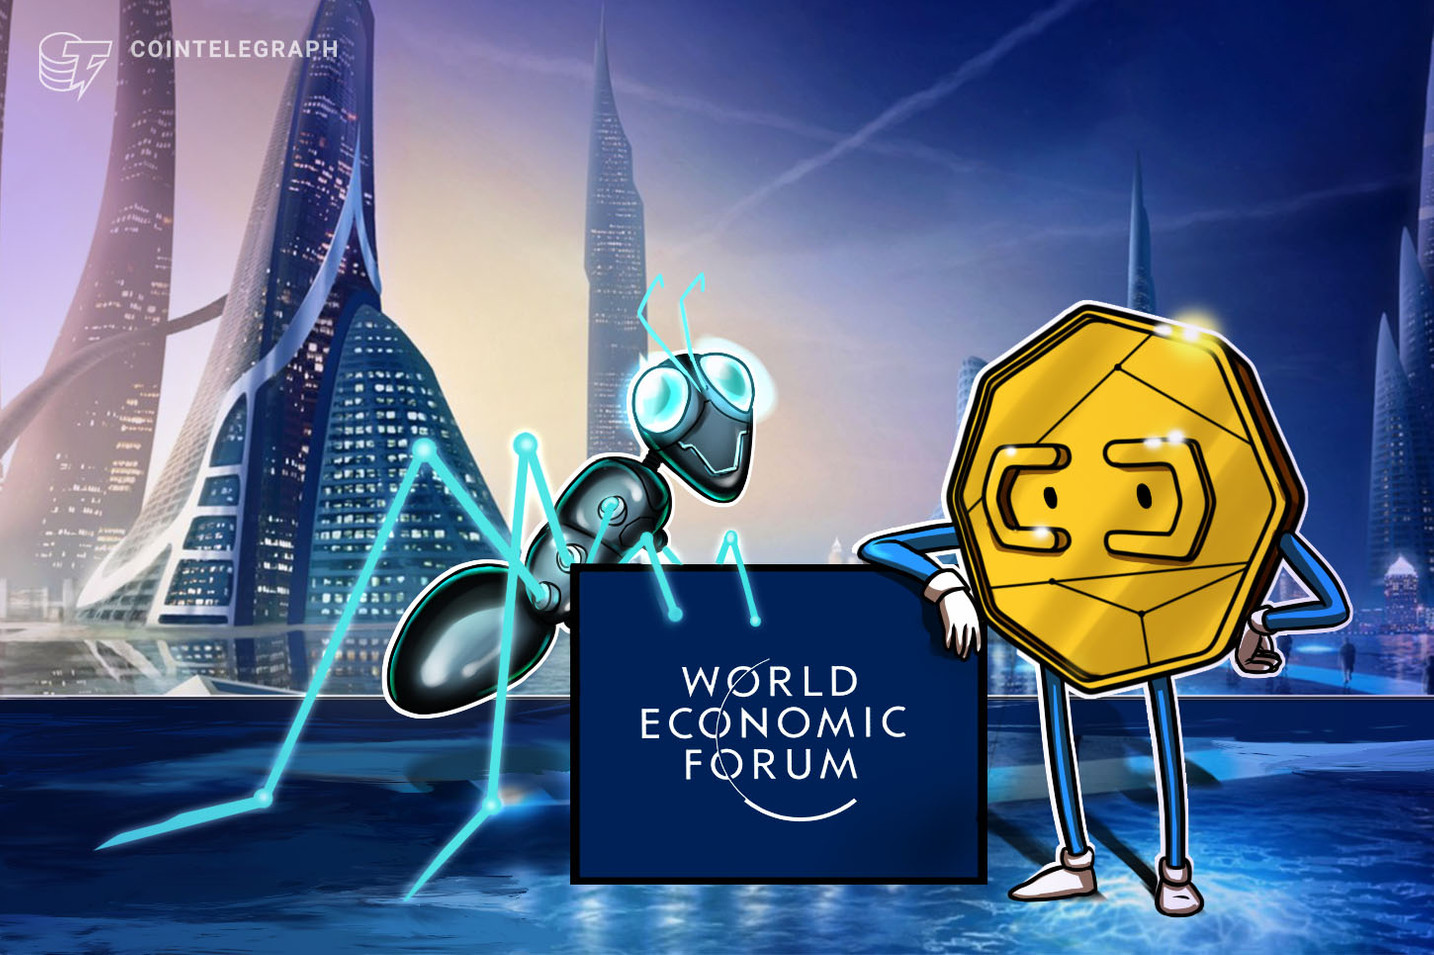 World Economic Forum Forms Tech Policy Councils for Blockchain, AI, IoT